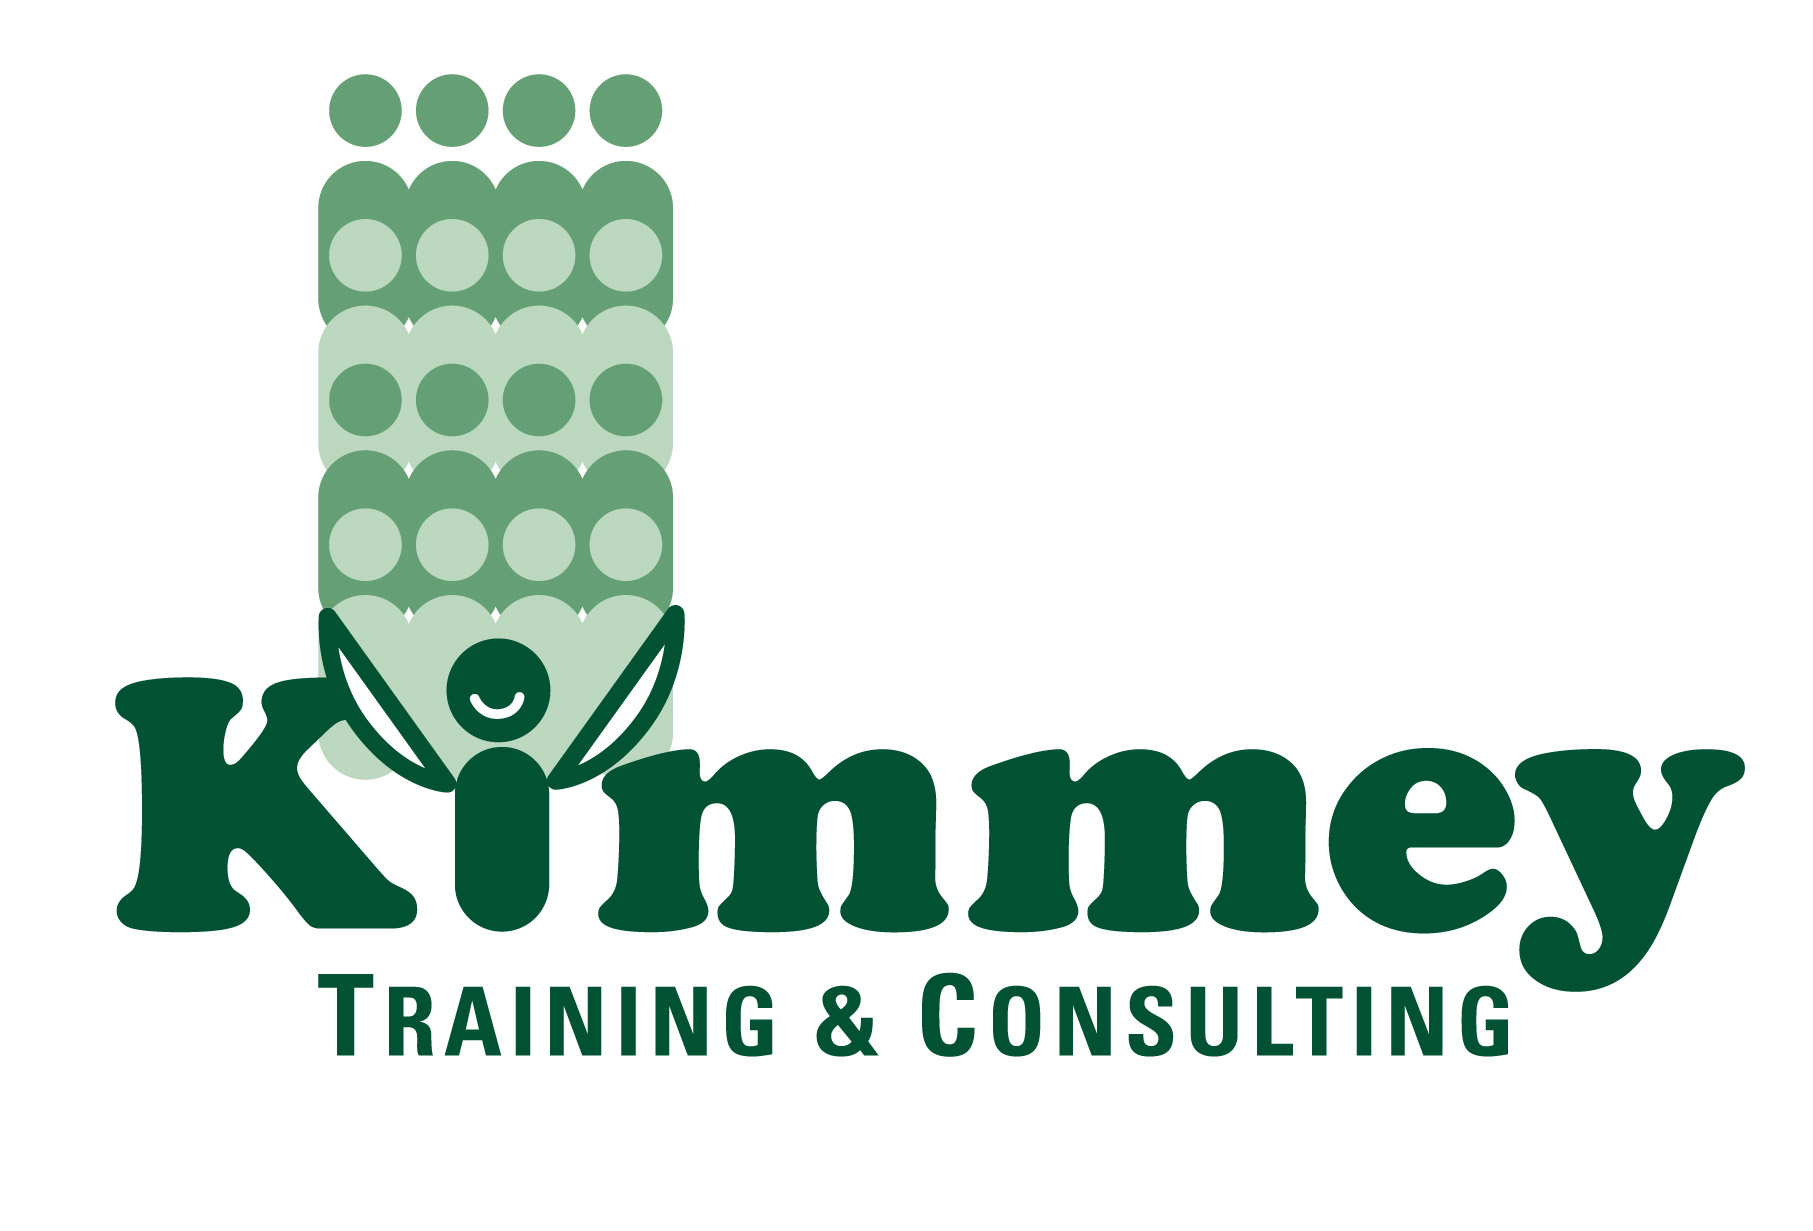 Logo Kimmey Training and Consulting